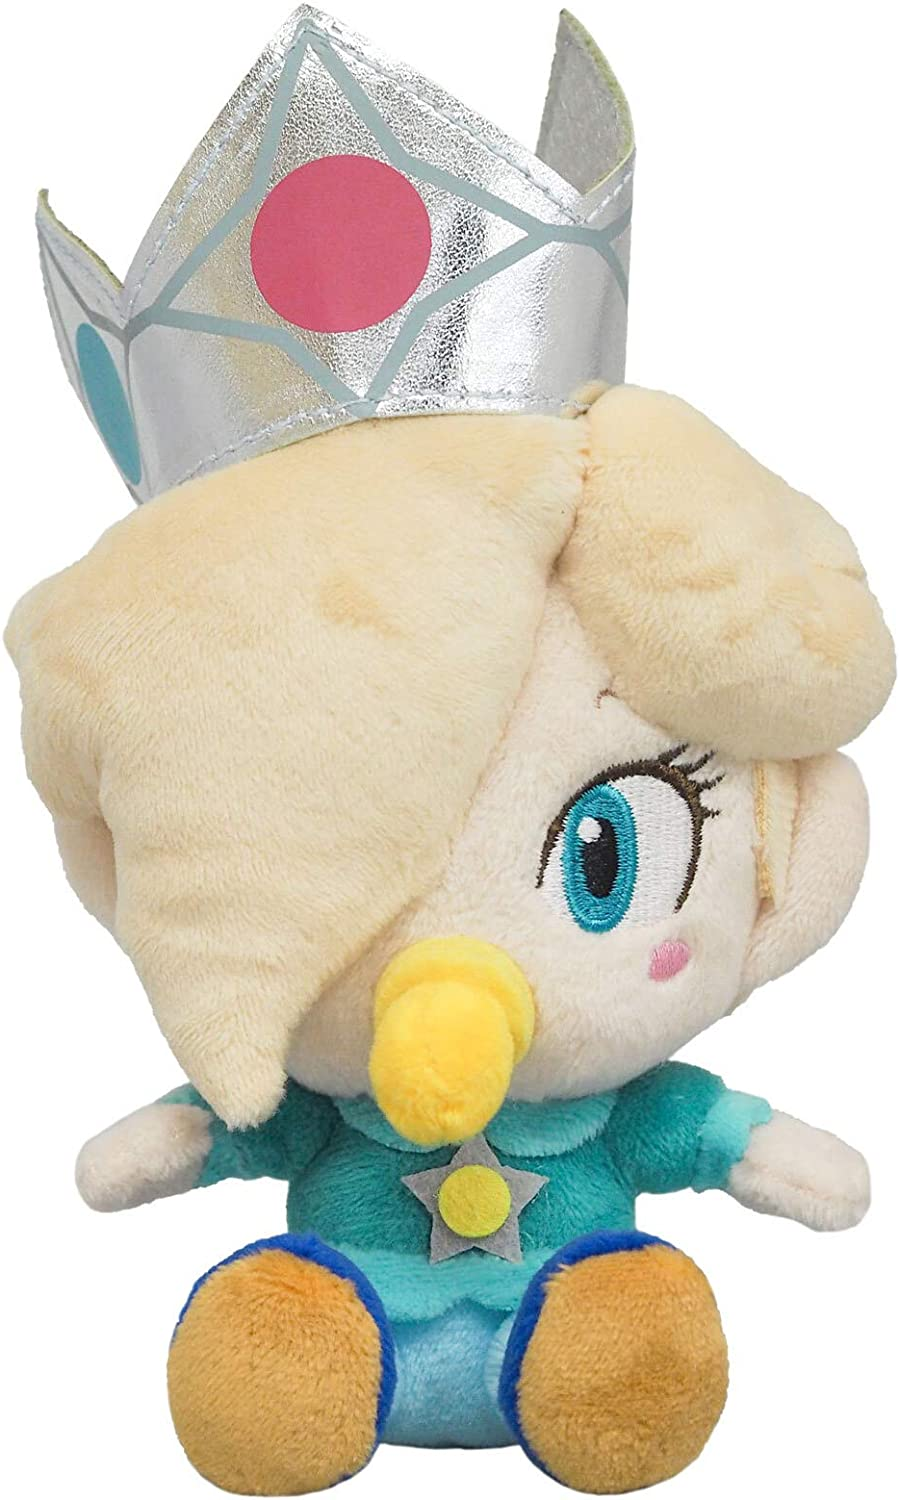 Little Buddy 1729 Super Mario All Star Collection Baby Rosalina 6 Inches for sale online